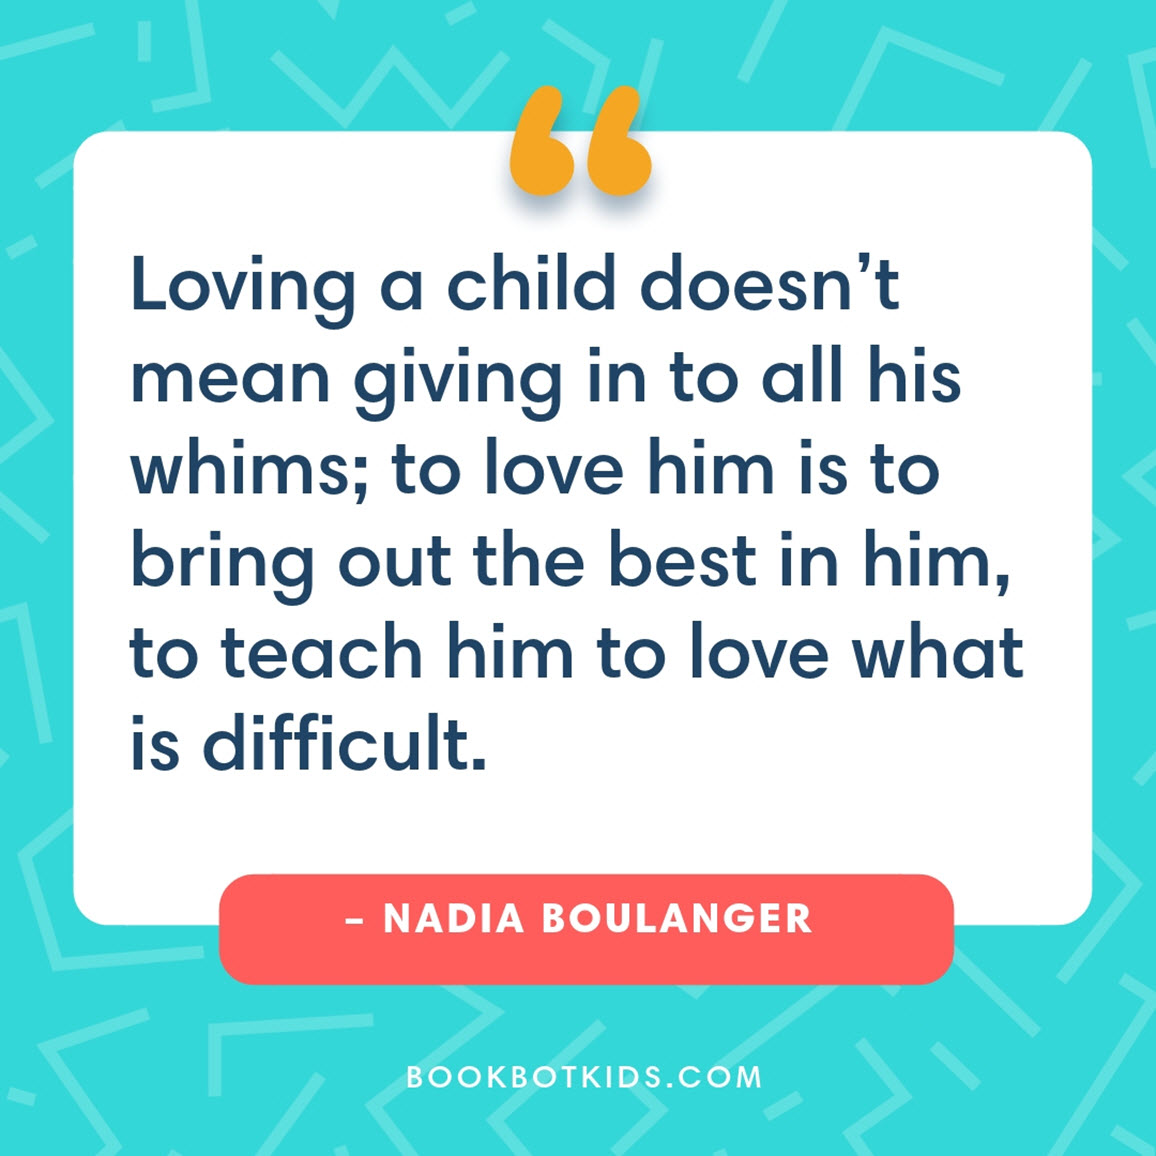 Loving a child doesn't mean giving in to all his whims; to love him is to bring out the best in him, to teach him to love what is difficult. – Nadia Boulanger